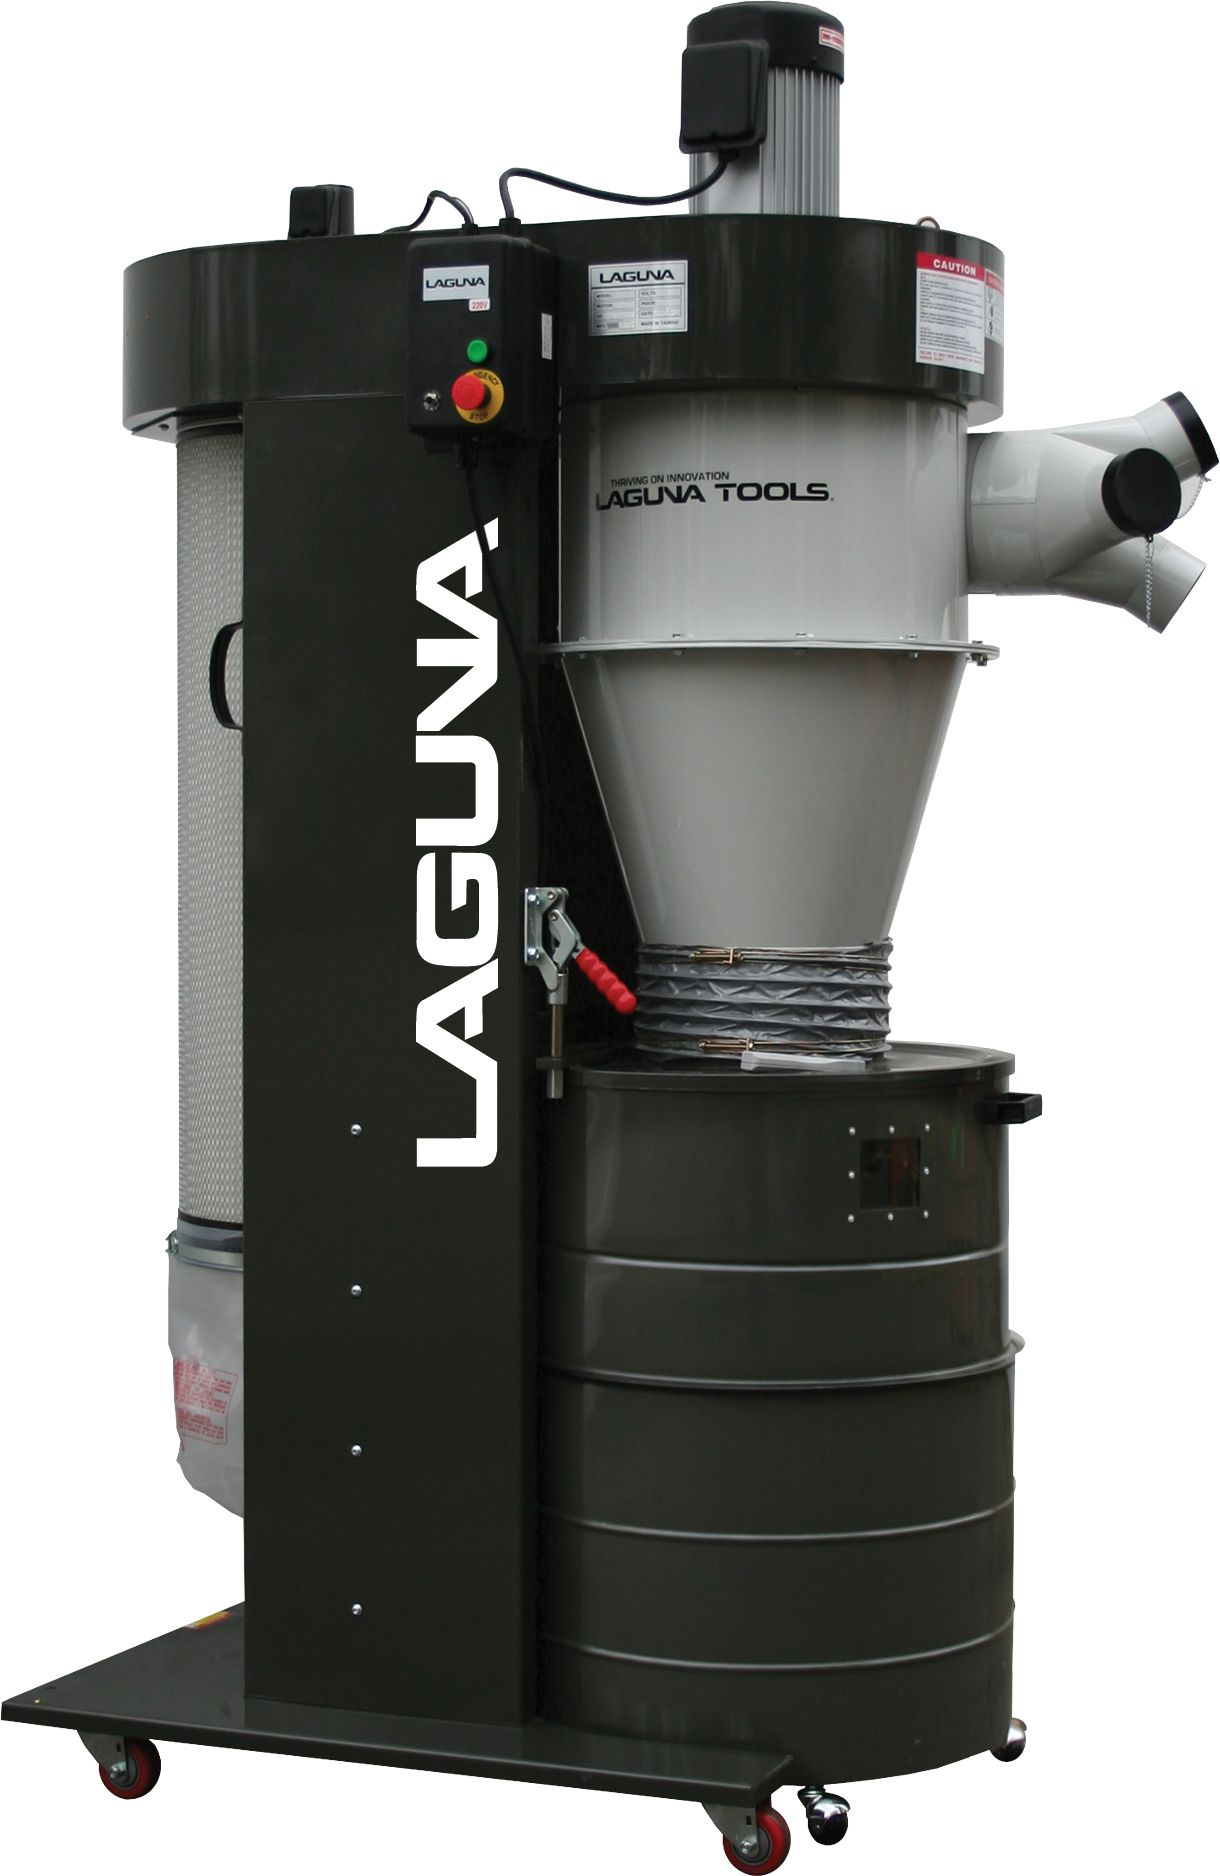 Dust Collector Category in 2020 Car cleaning, Dust